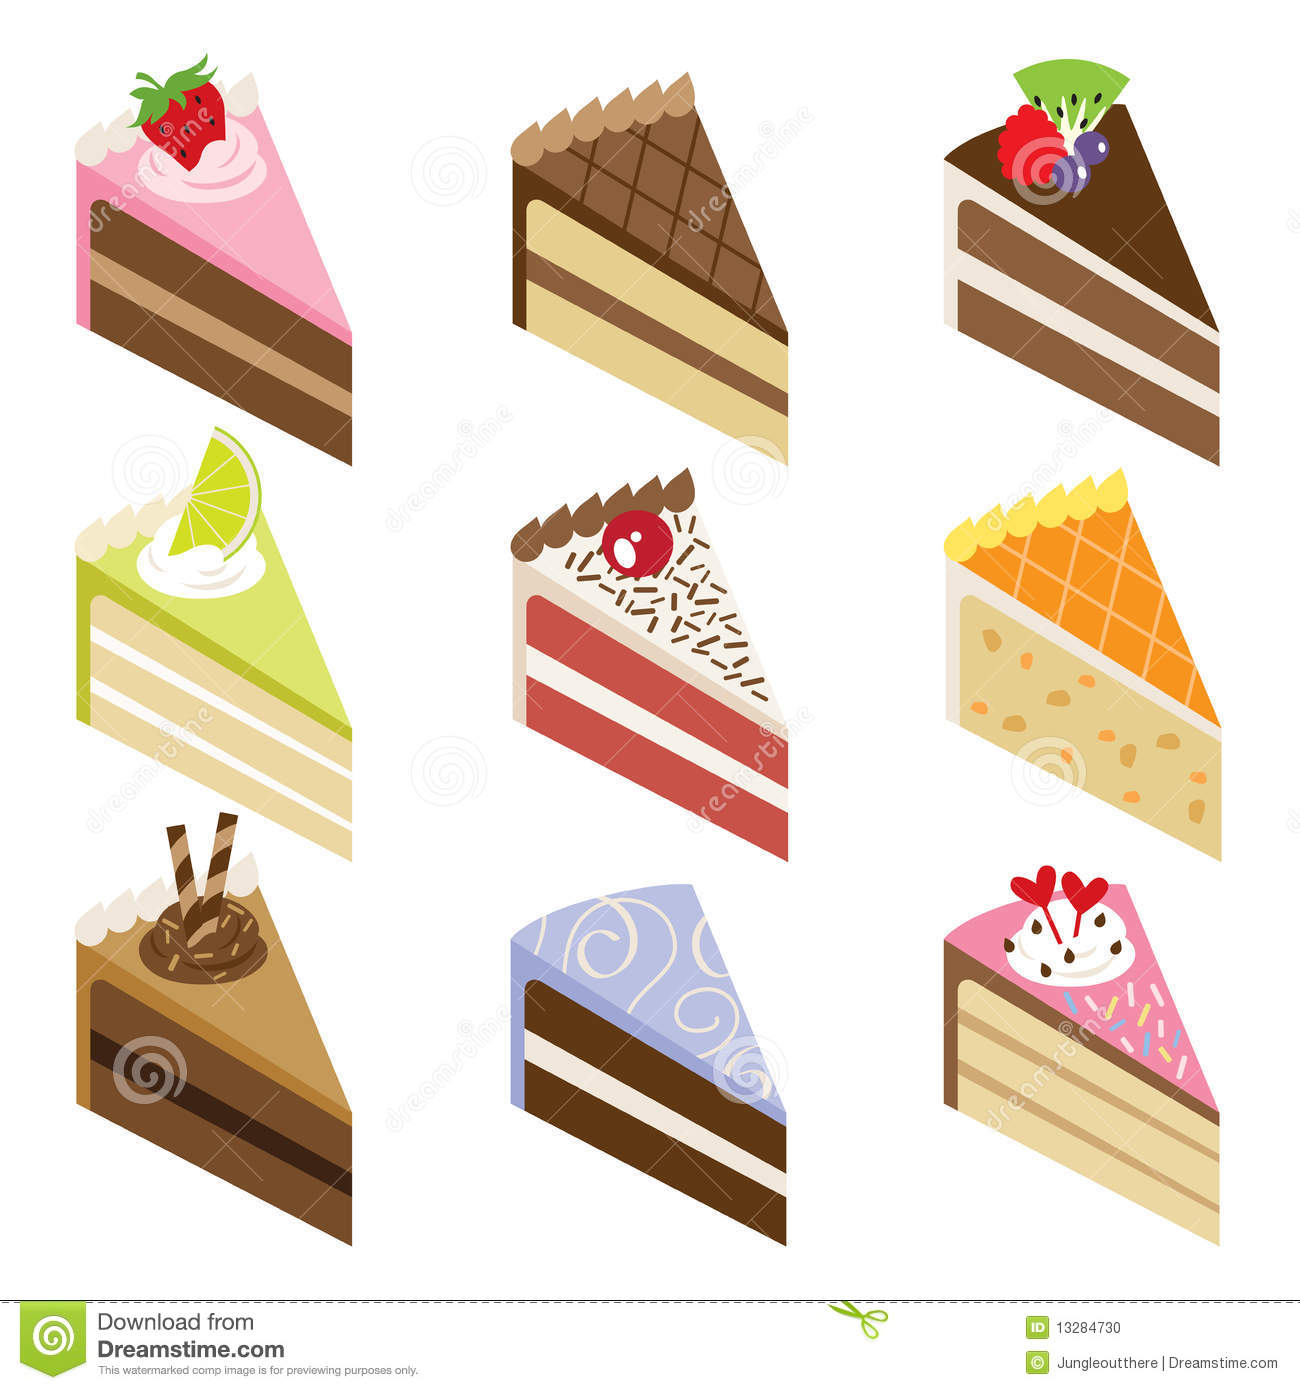 Delicious Cake Clipart : Delicious Cake Slices Stock Photo - Image: 13284730